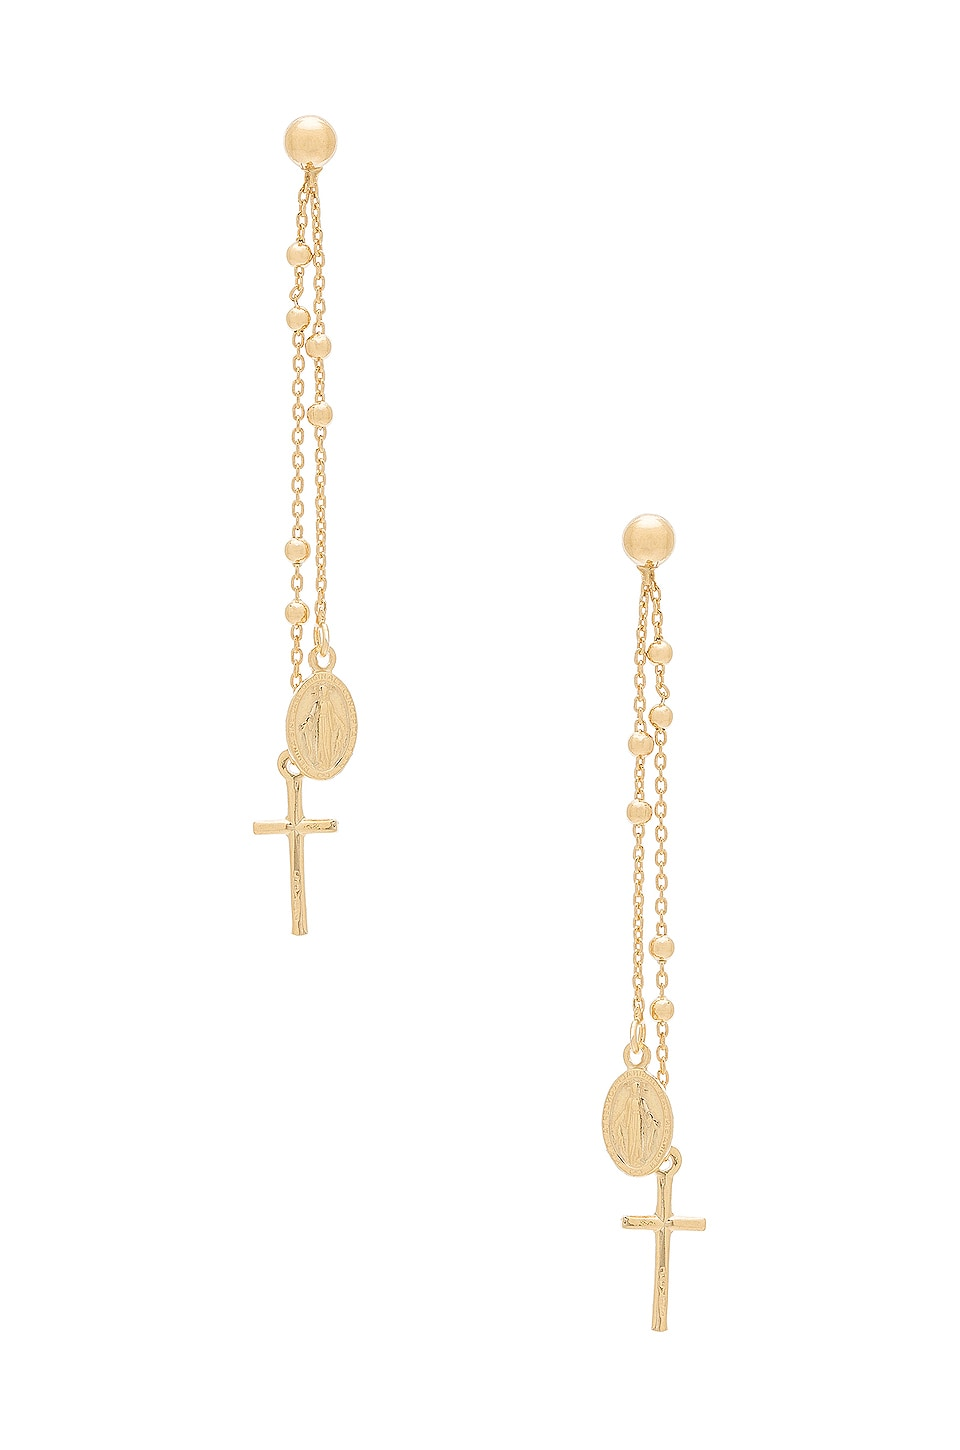 Natalie B Jewelry Miraculous Earrings in Gold